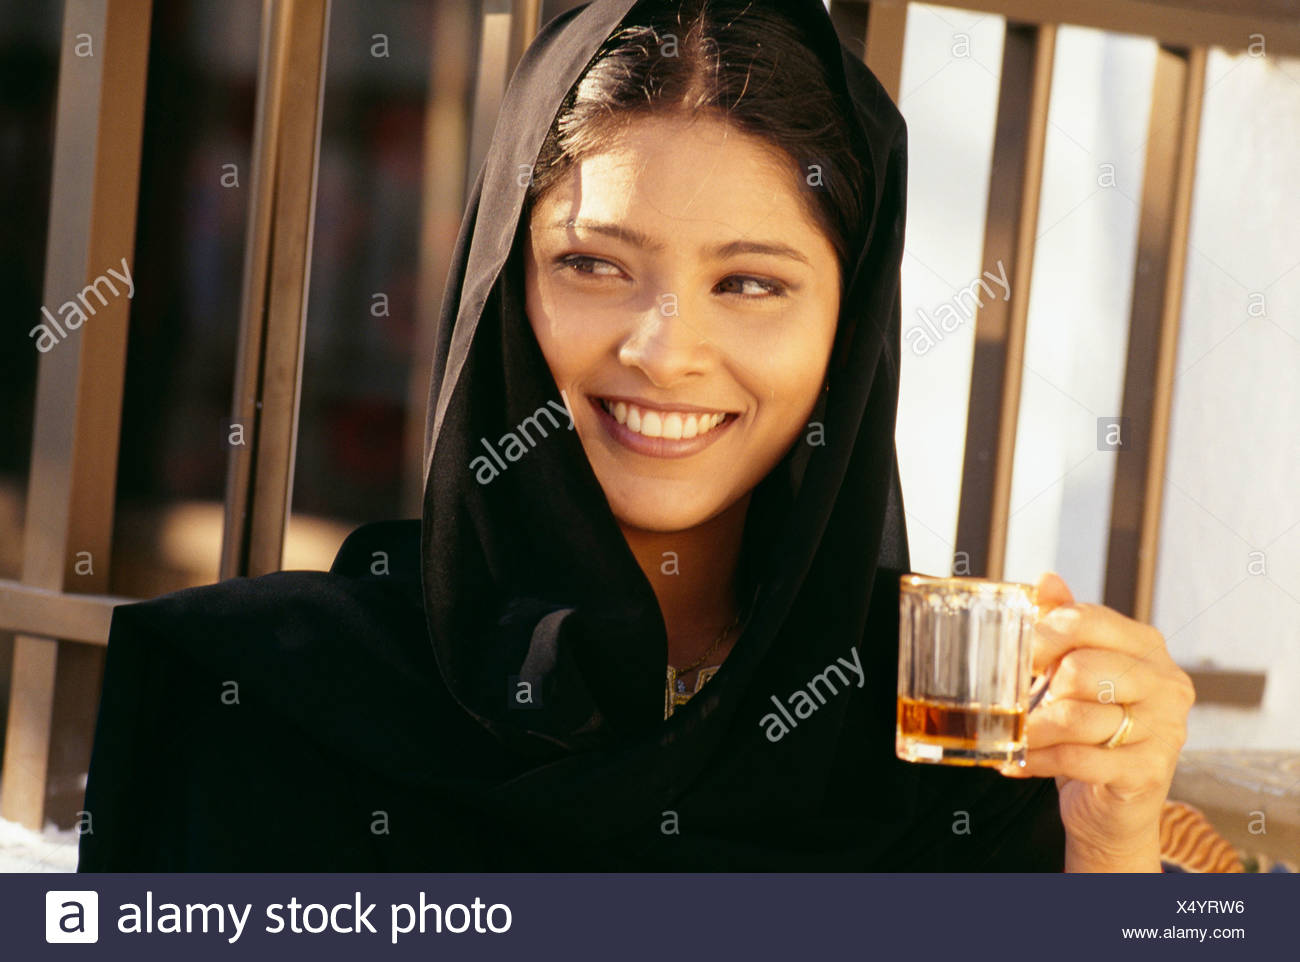 A young woman in burka smiles as she holds the glass. - Stock Image